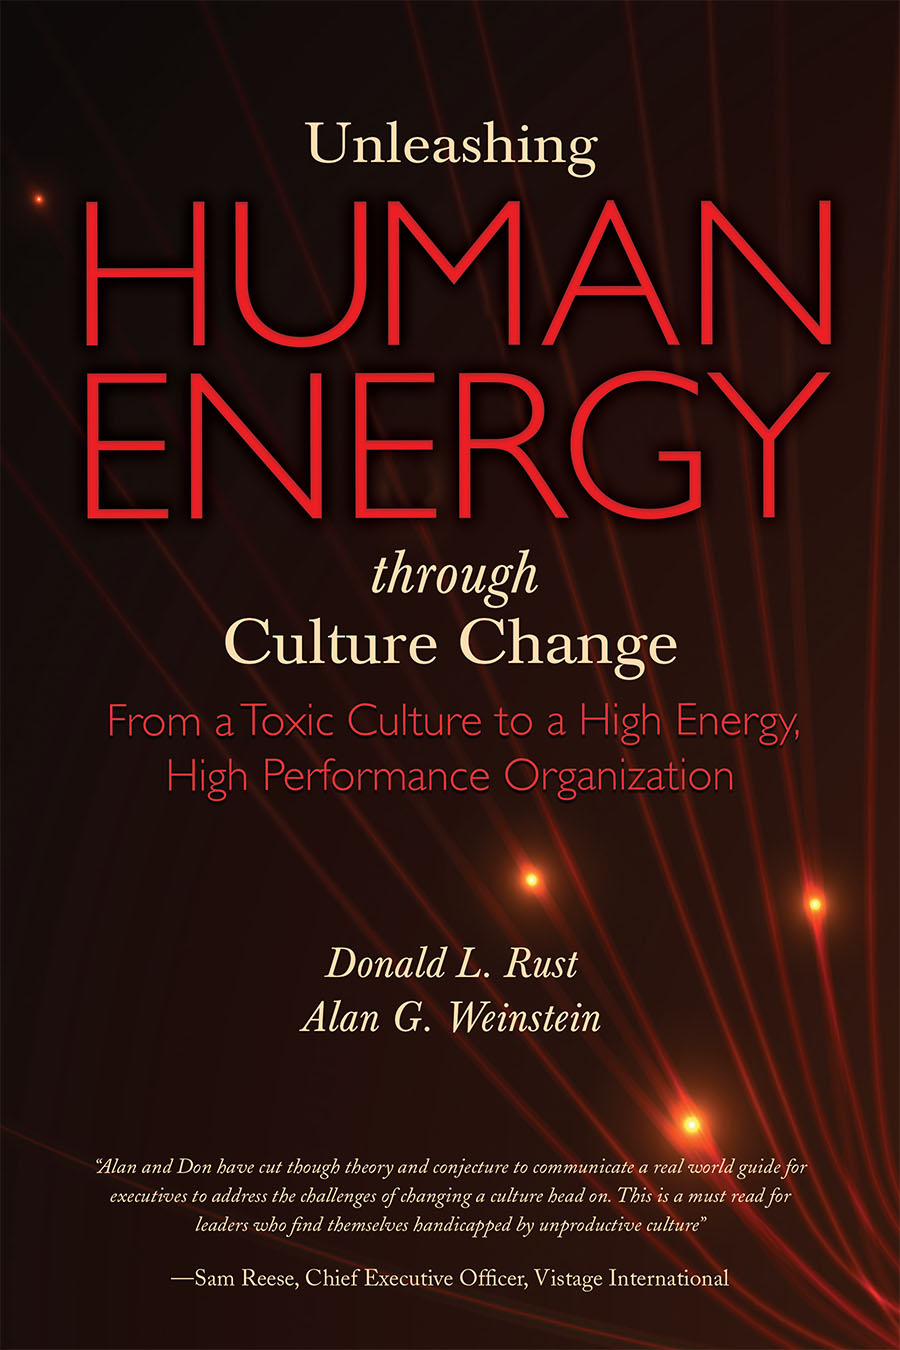 About the Book — Unleashing Human Energy Through Culture Change